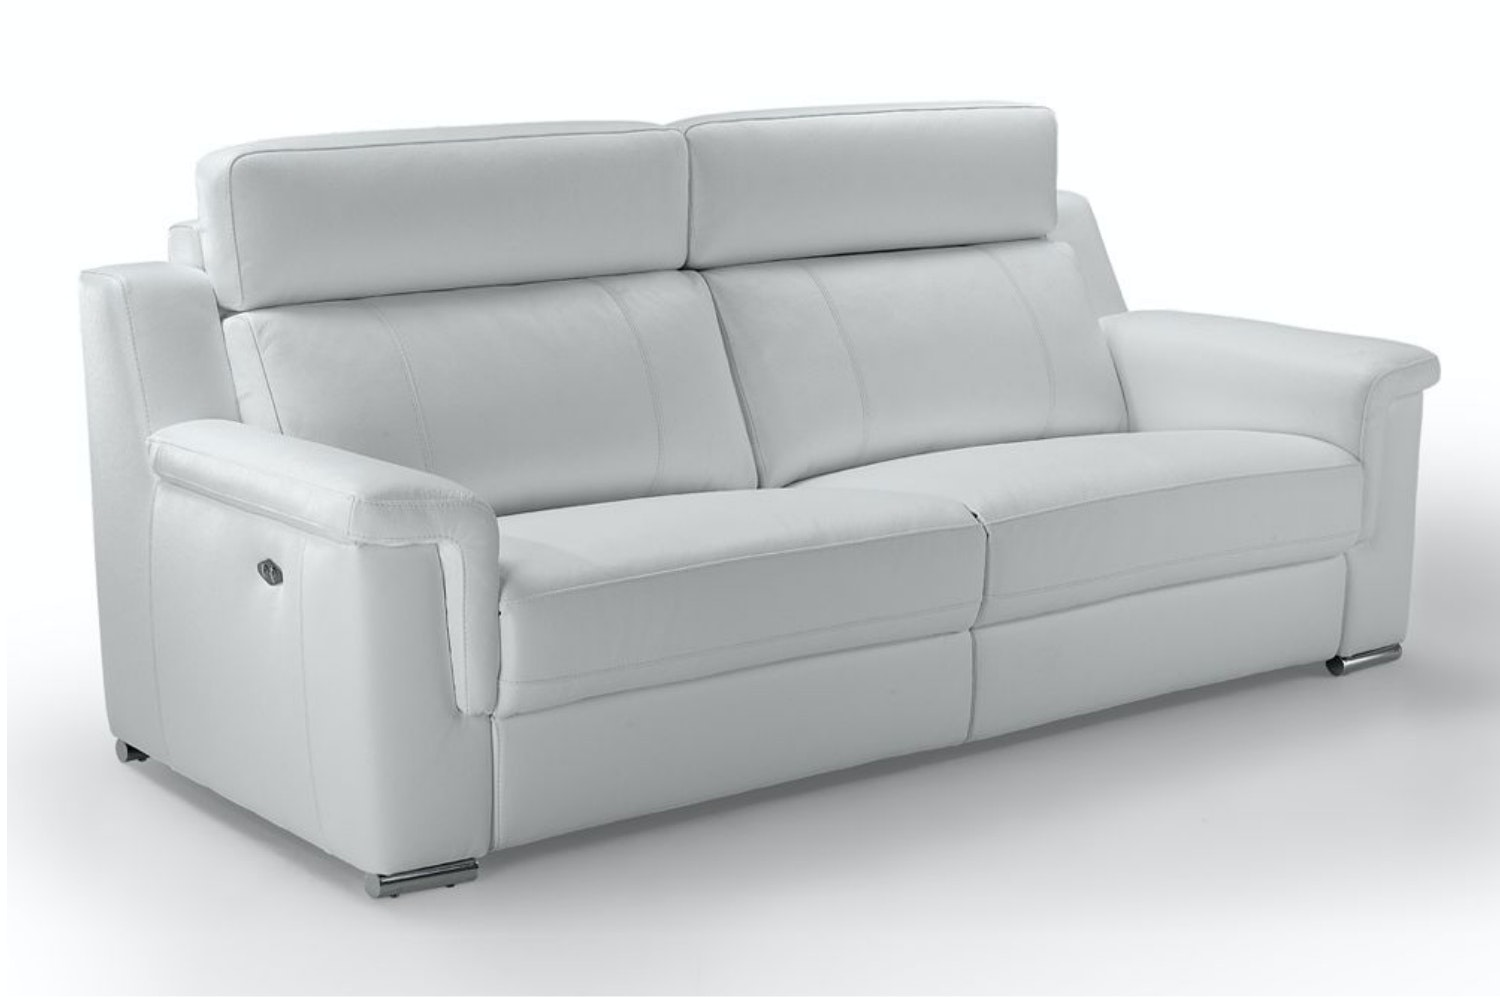 Vulcano 3 Seater Leather Sofa